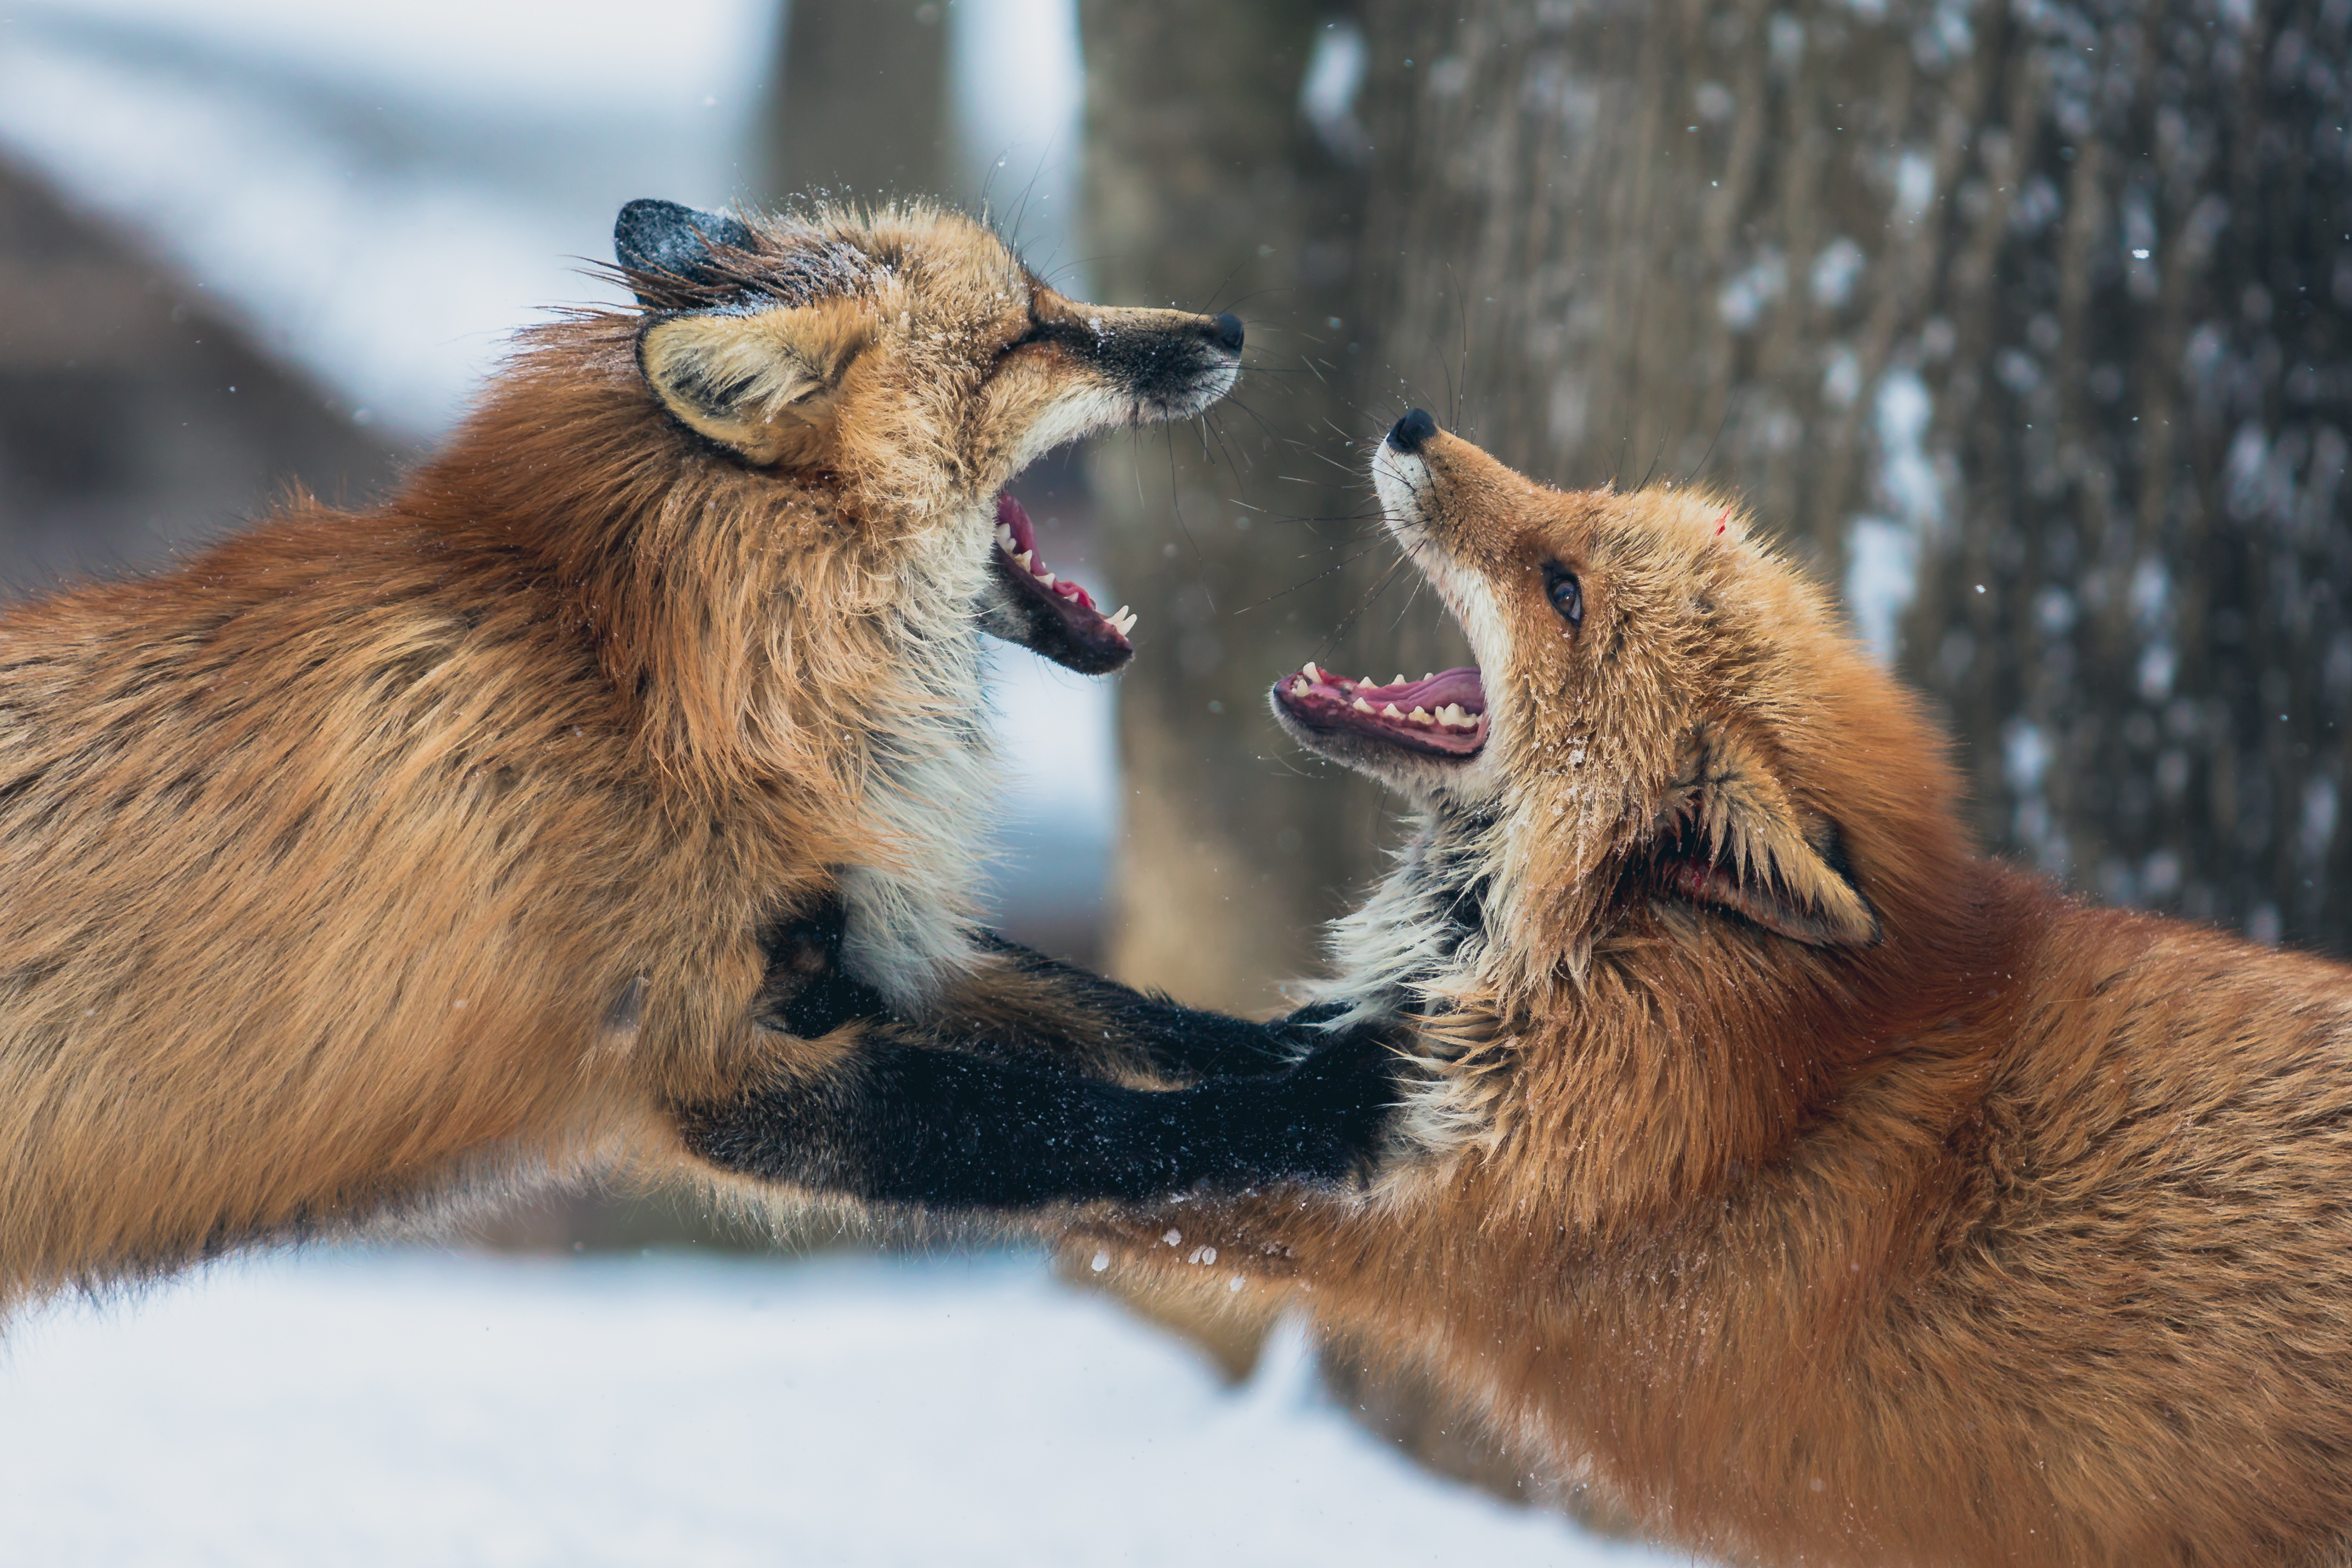 80338 download wallpaper Animals, Couple, Pair, Playful, Aggression, Fox screensavers and pictures for free